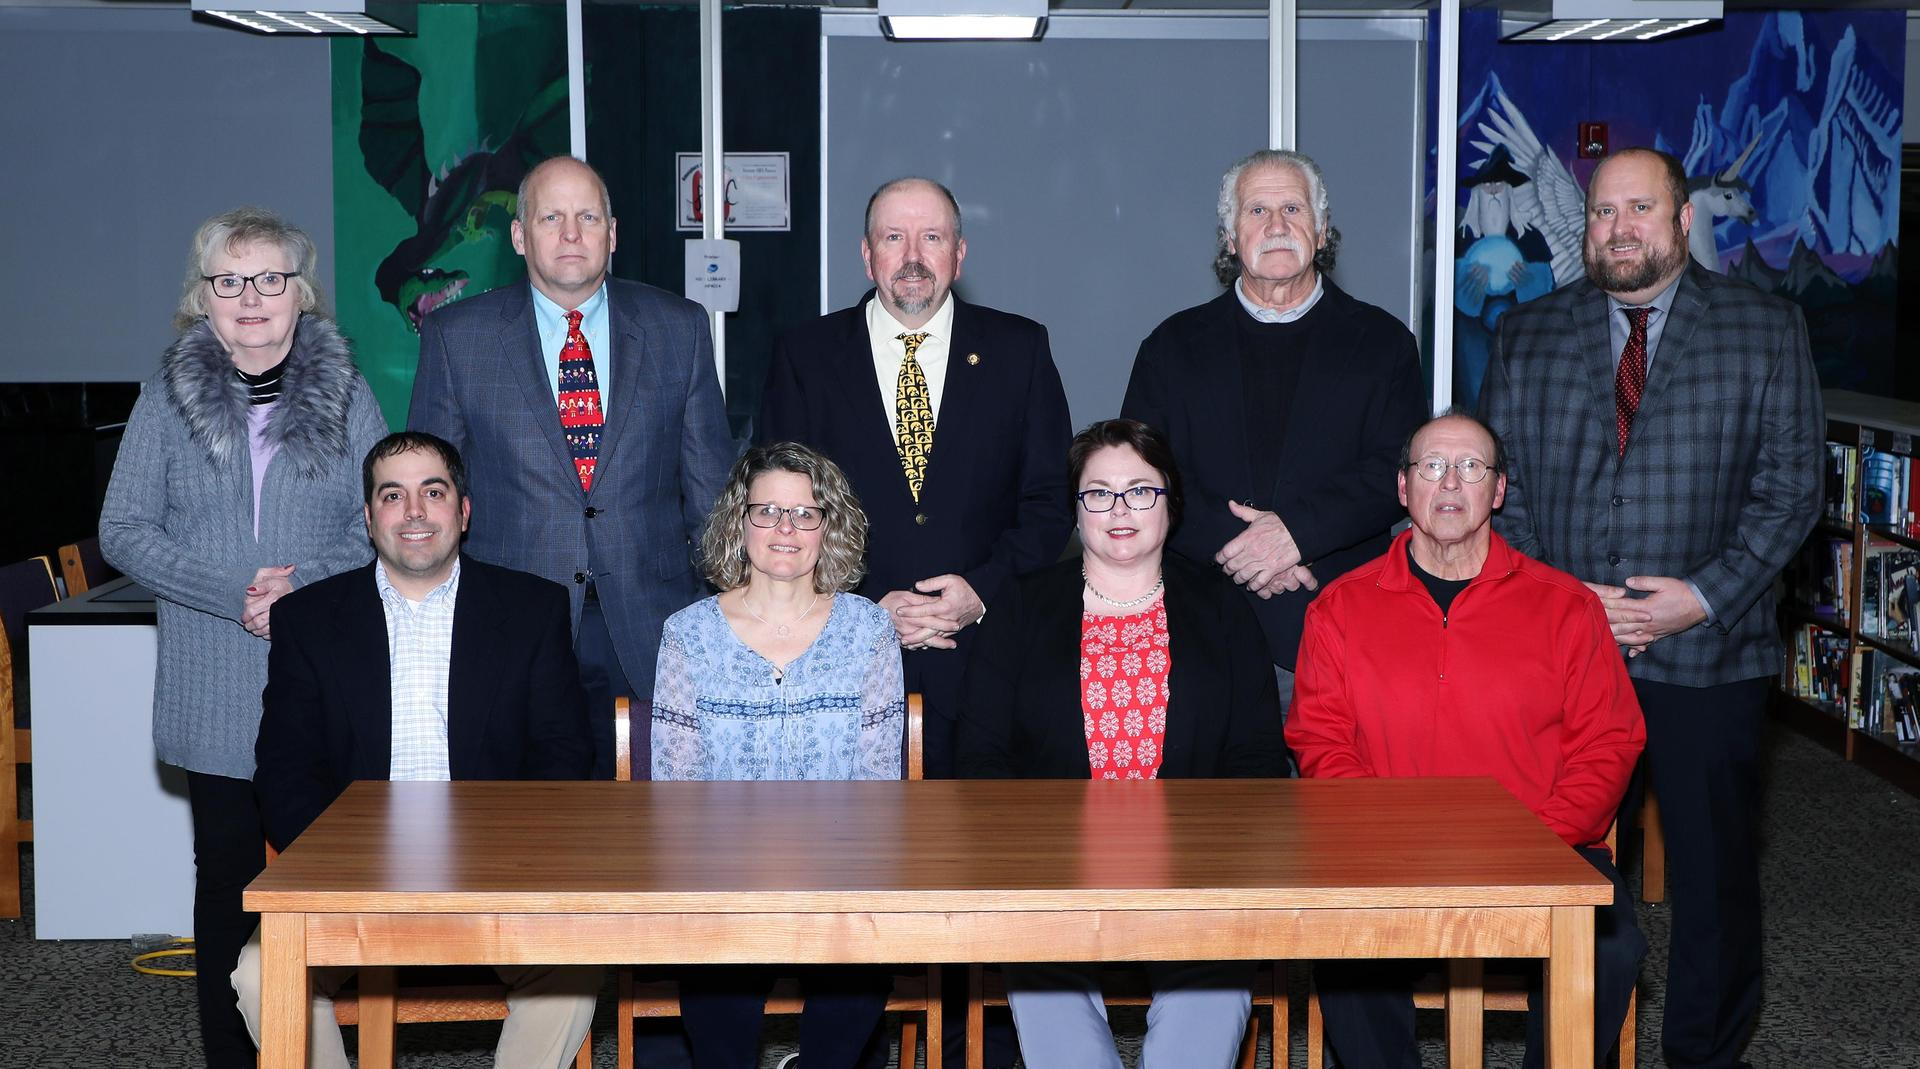 Central Cambria School Board Members